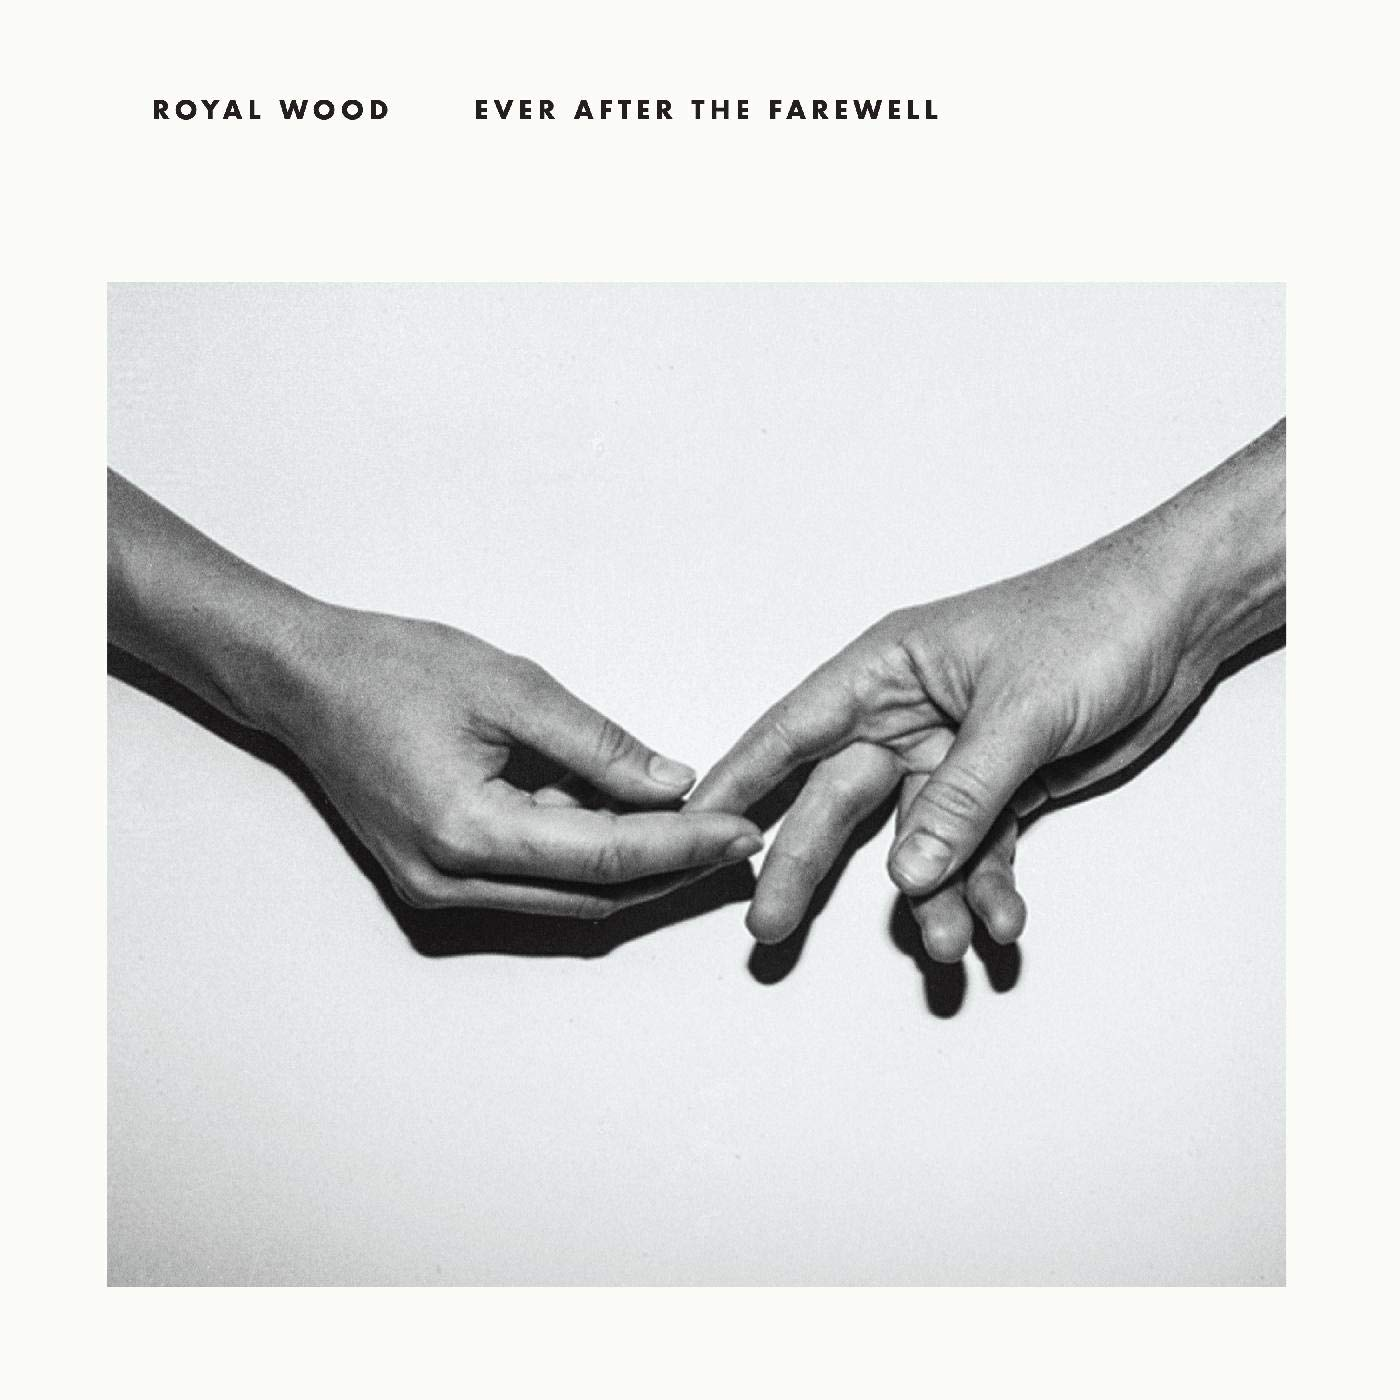 Royal Wood - Ever After the Farewell (Album)